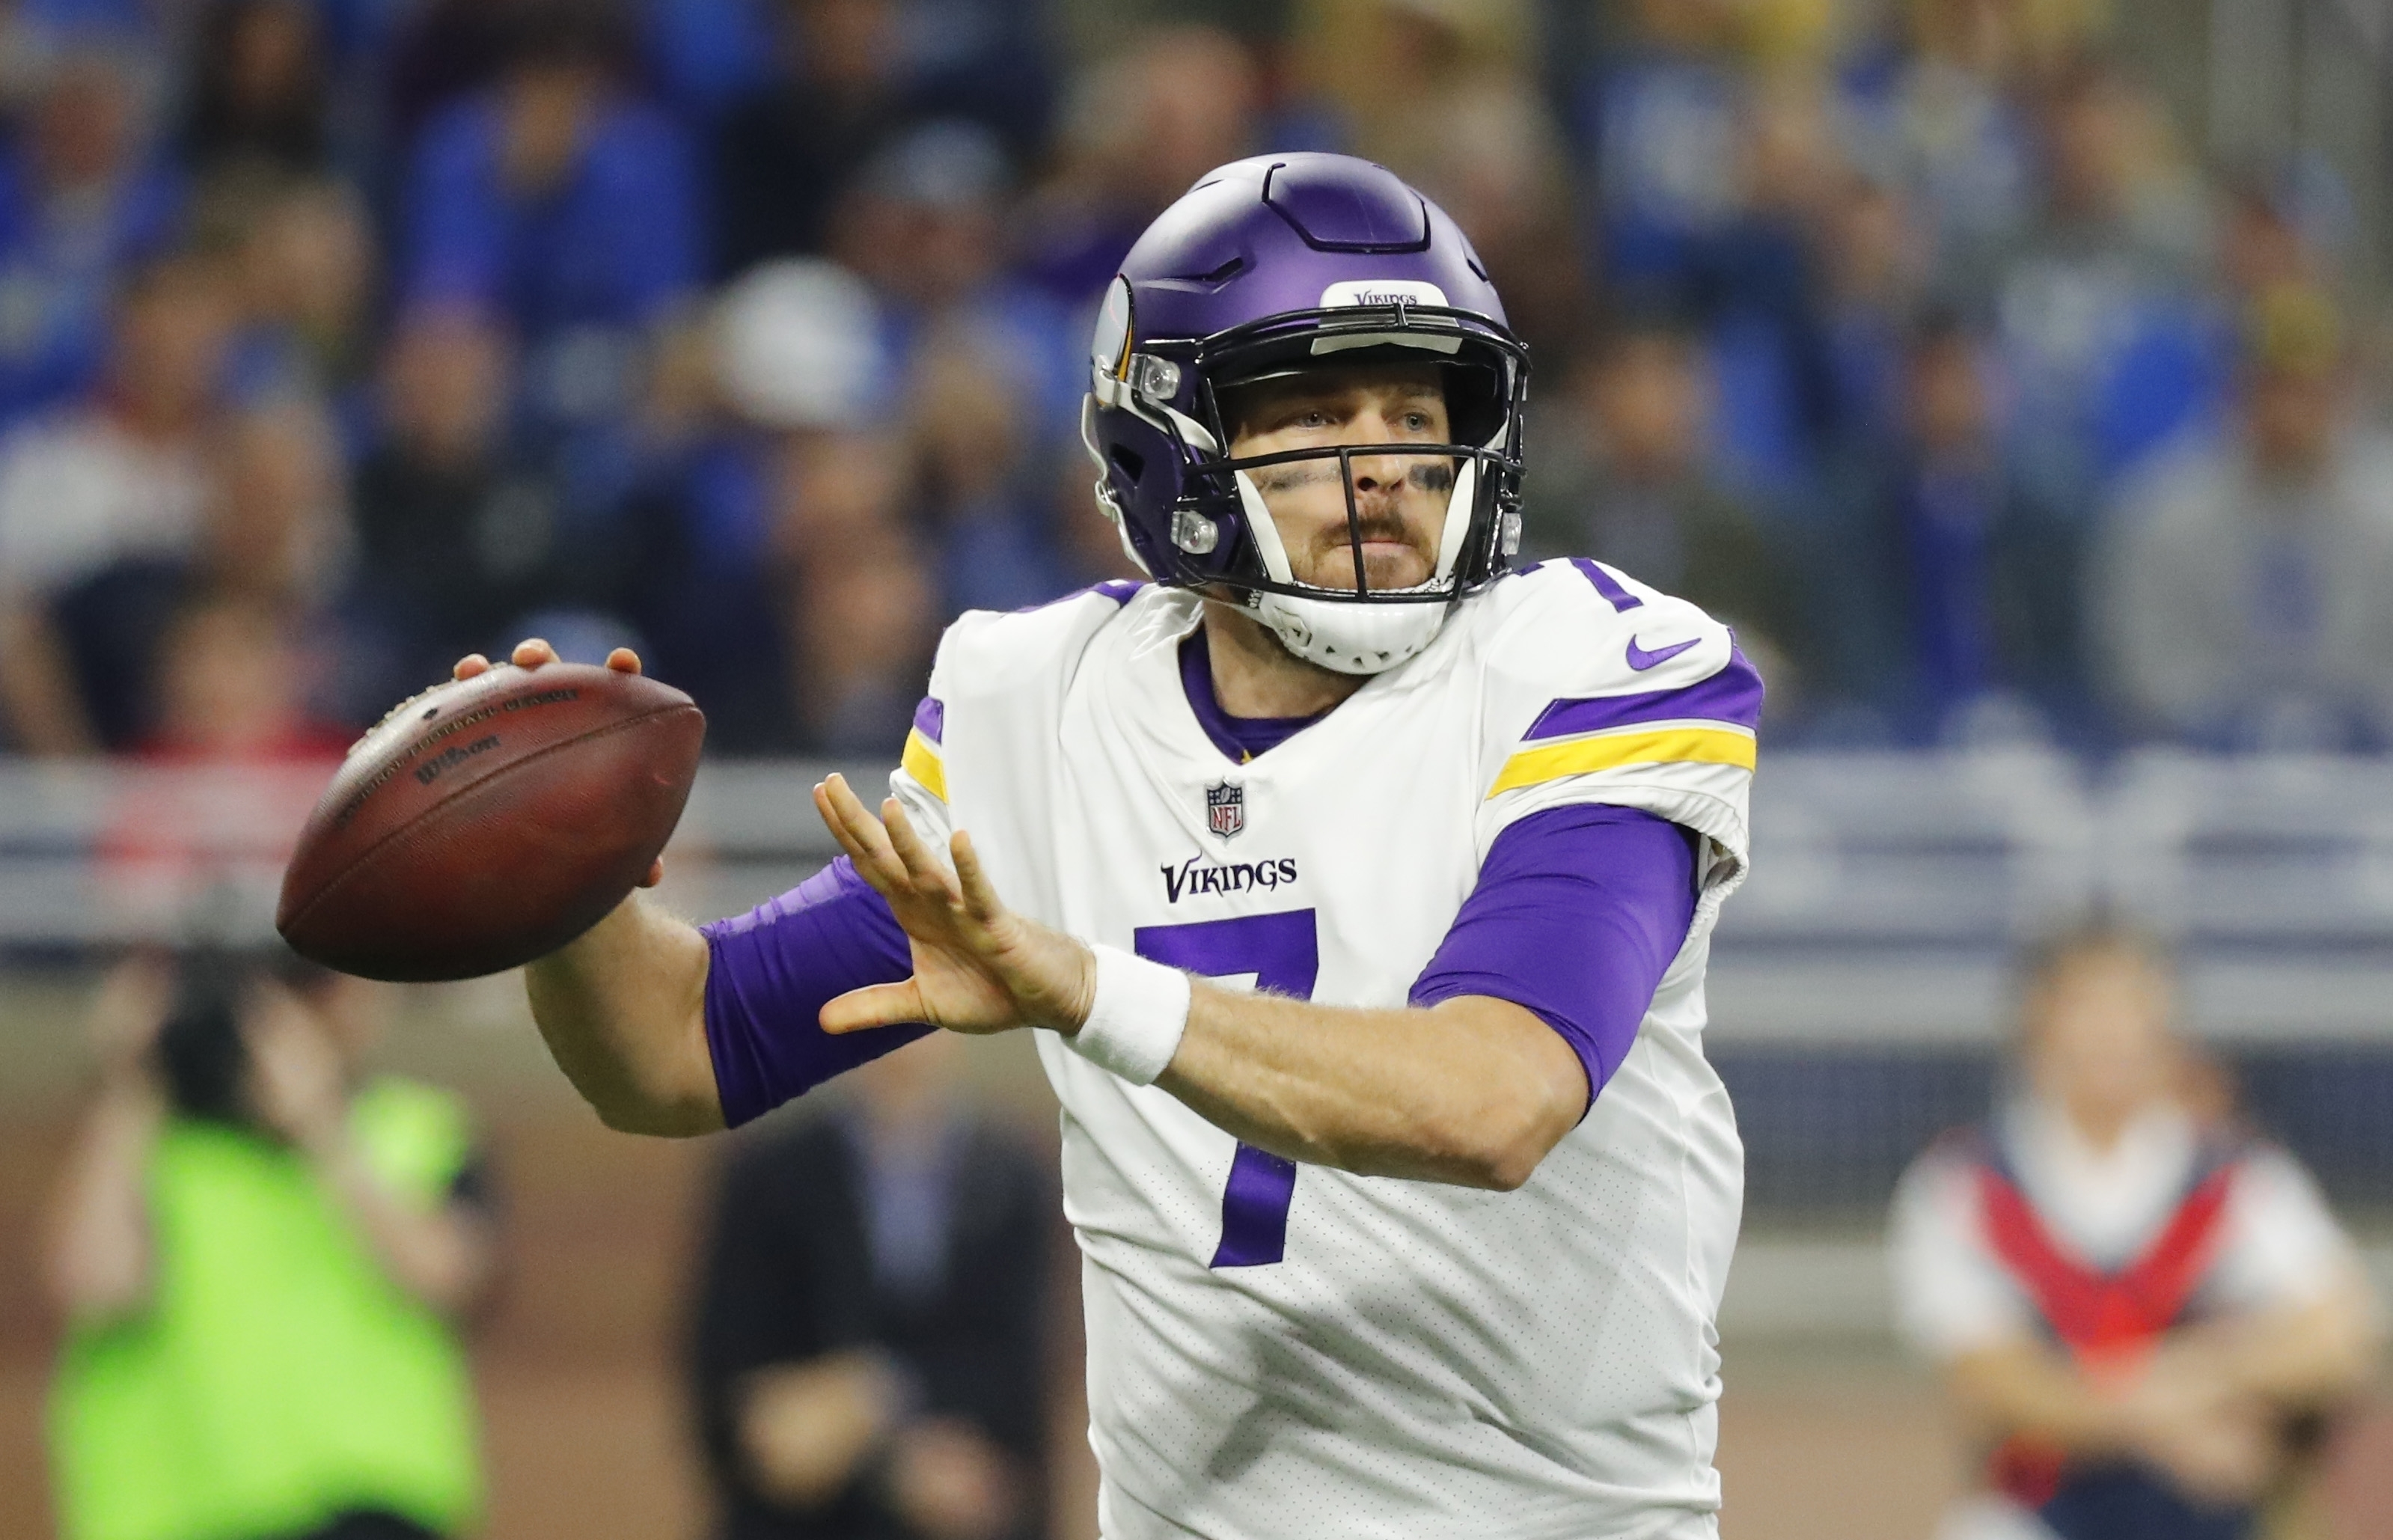 The Minnesota Vikings are 9-2 overall and 7-2 with journeyman Case Keenum as their starting quarterback.(AP Photo/Rick Osentoski)